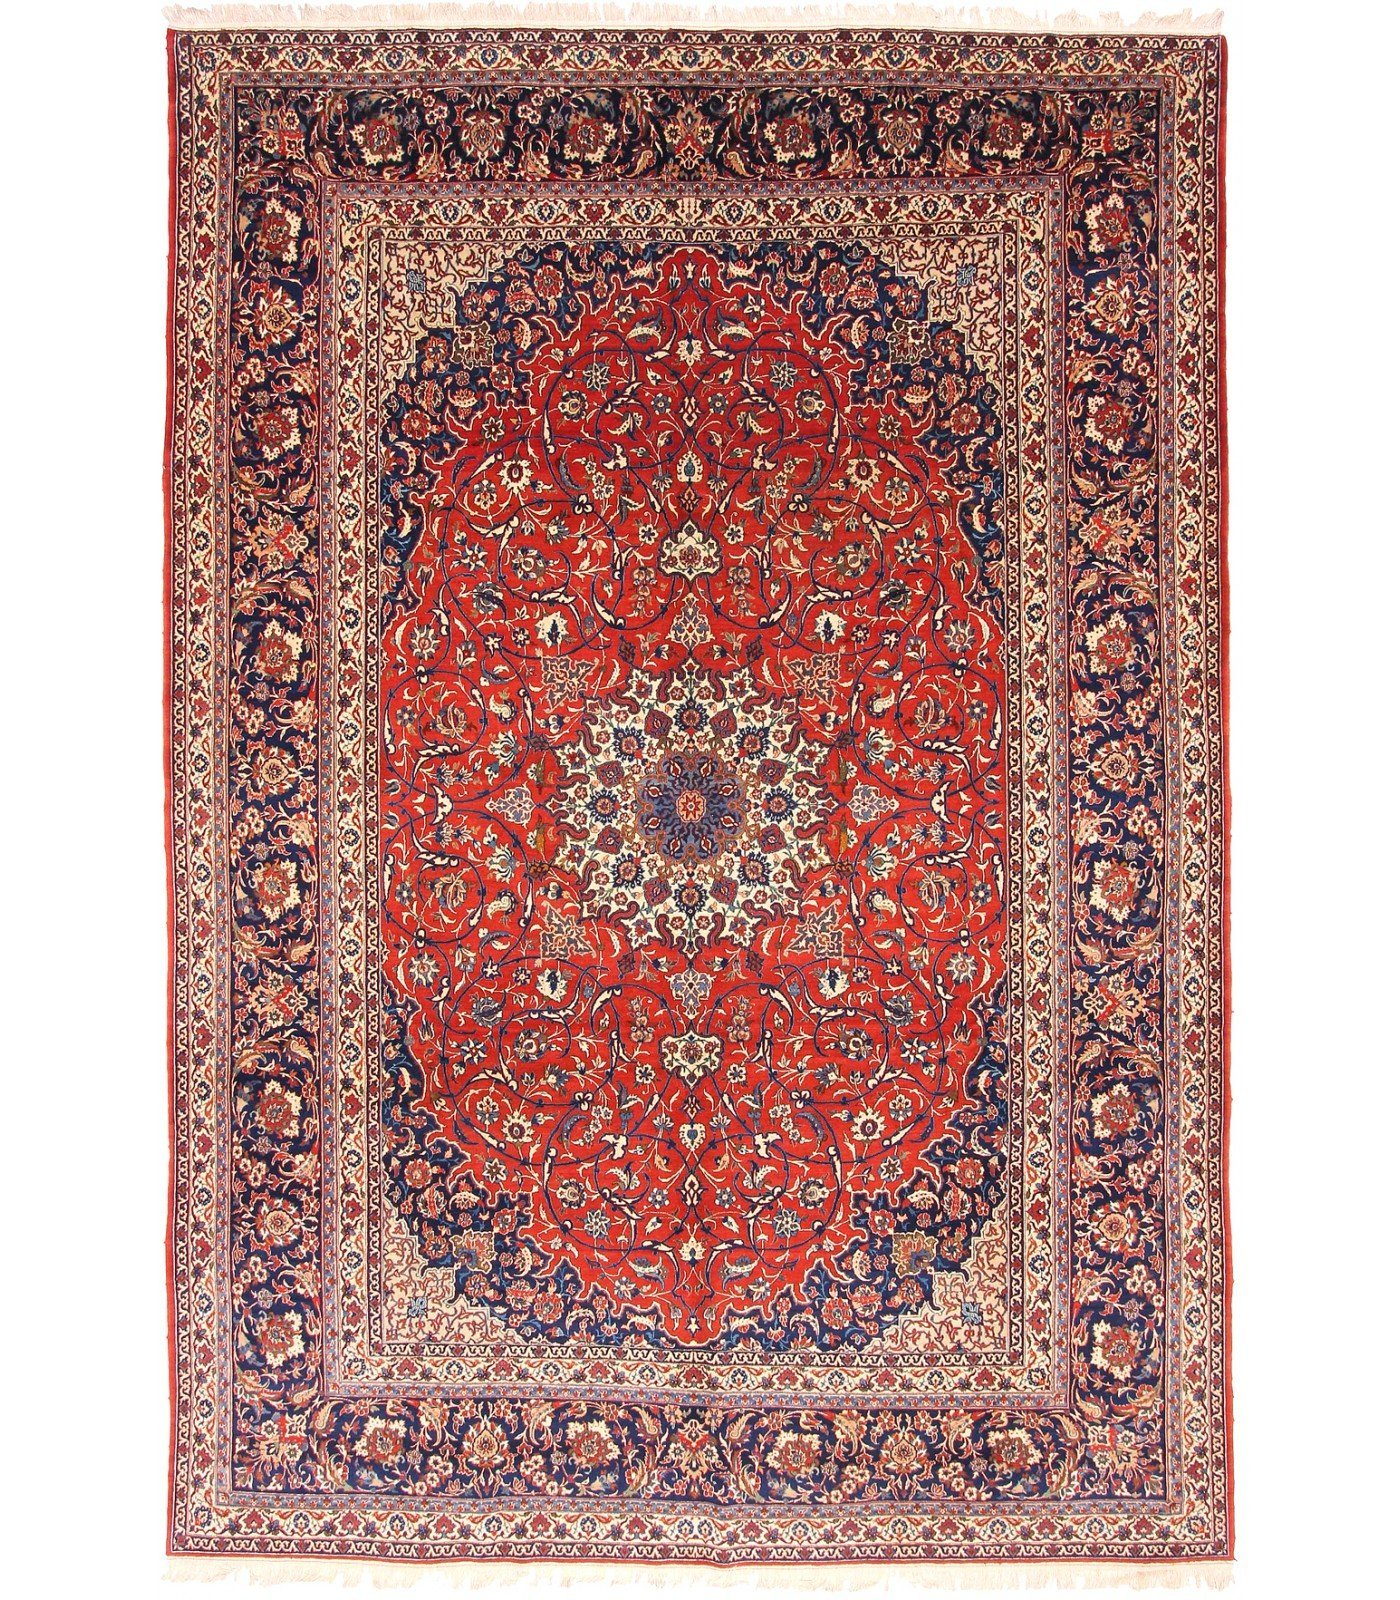 Persian rugs antique caucasian rugs antique persian rugs 8x10 persian carpet persian carpets - Wonderful persian living room designs buying tips for the rug ...